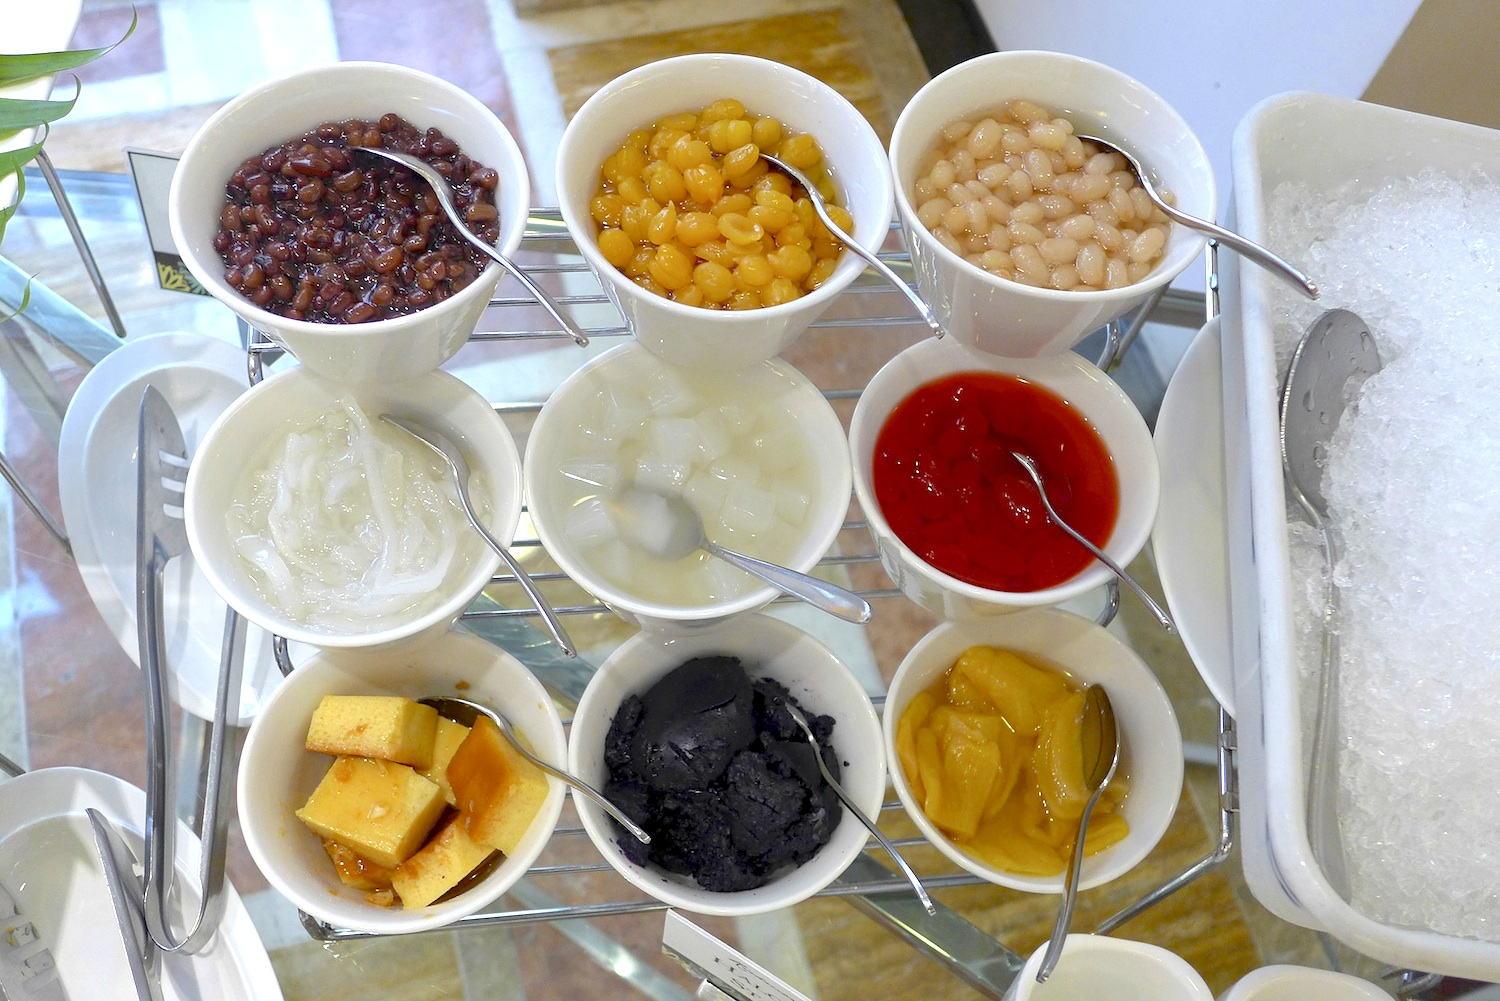 Half of the gazillion toppings you can put into your Halo-halo.